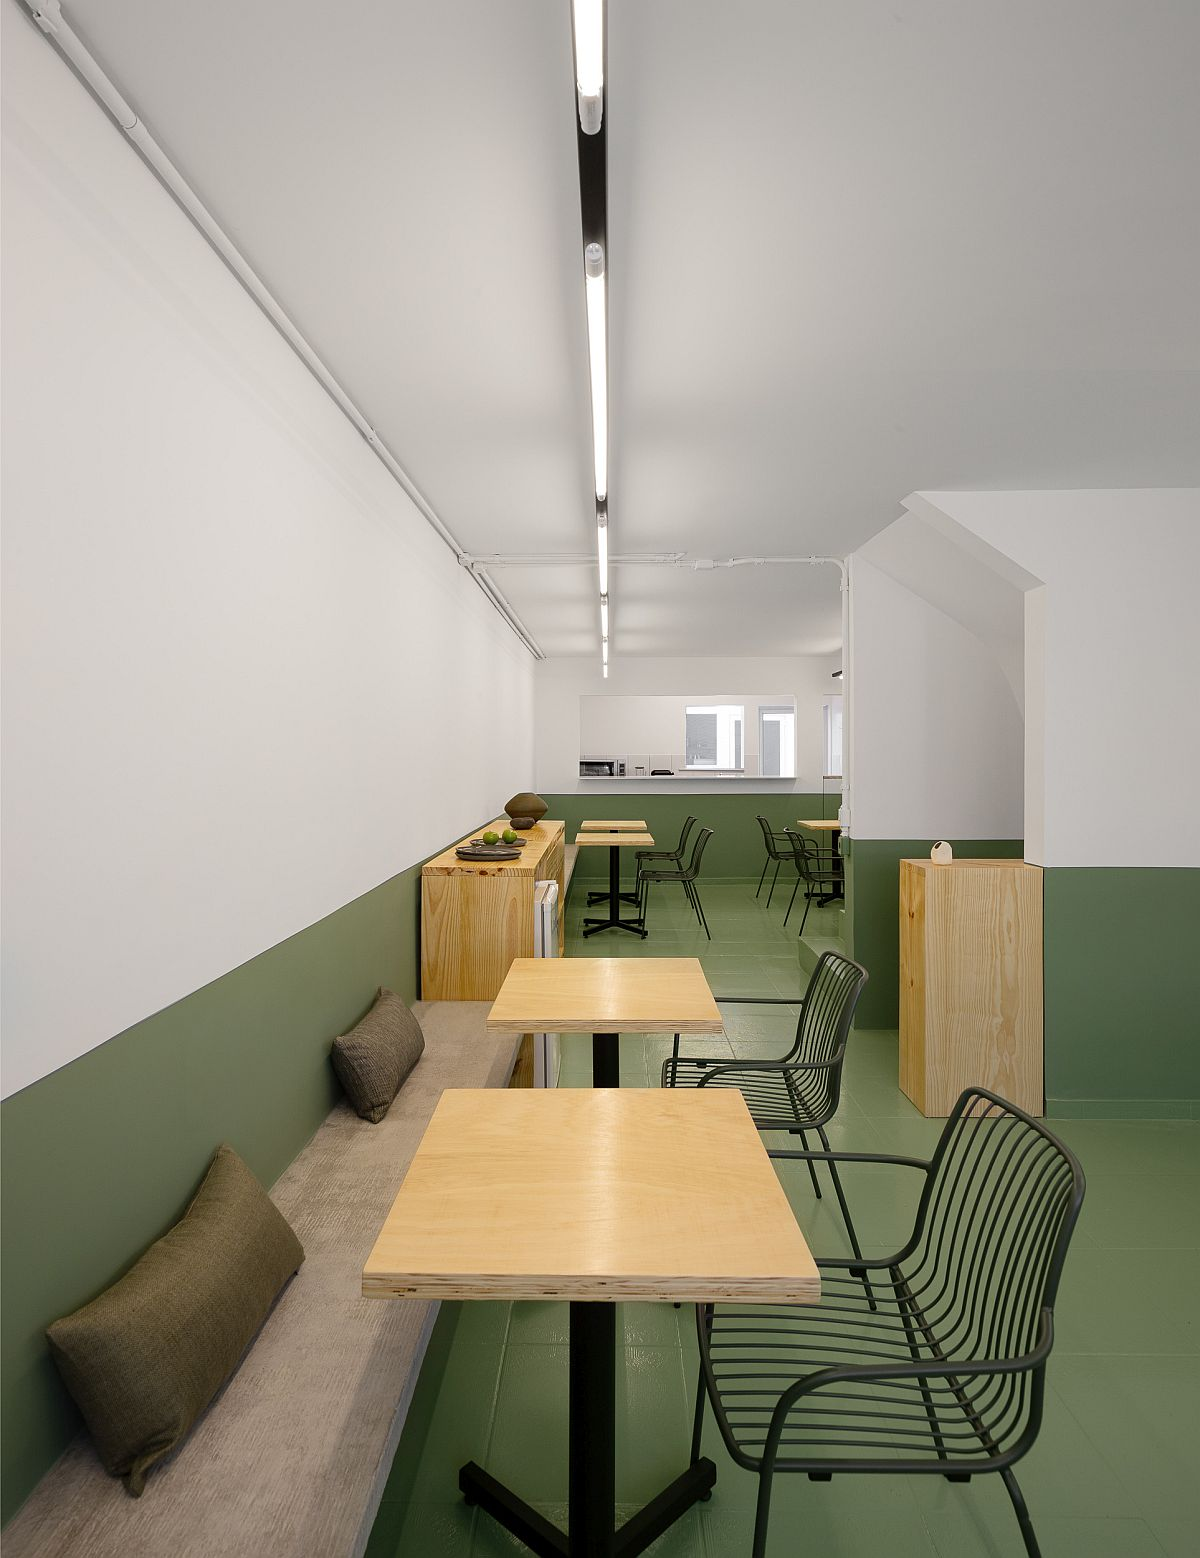 Simple and minimal decor inside the restaurant in Sao Paulo